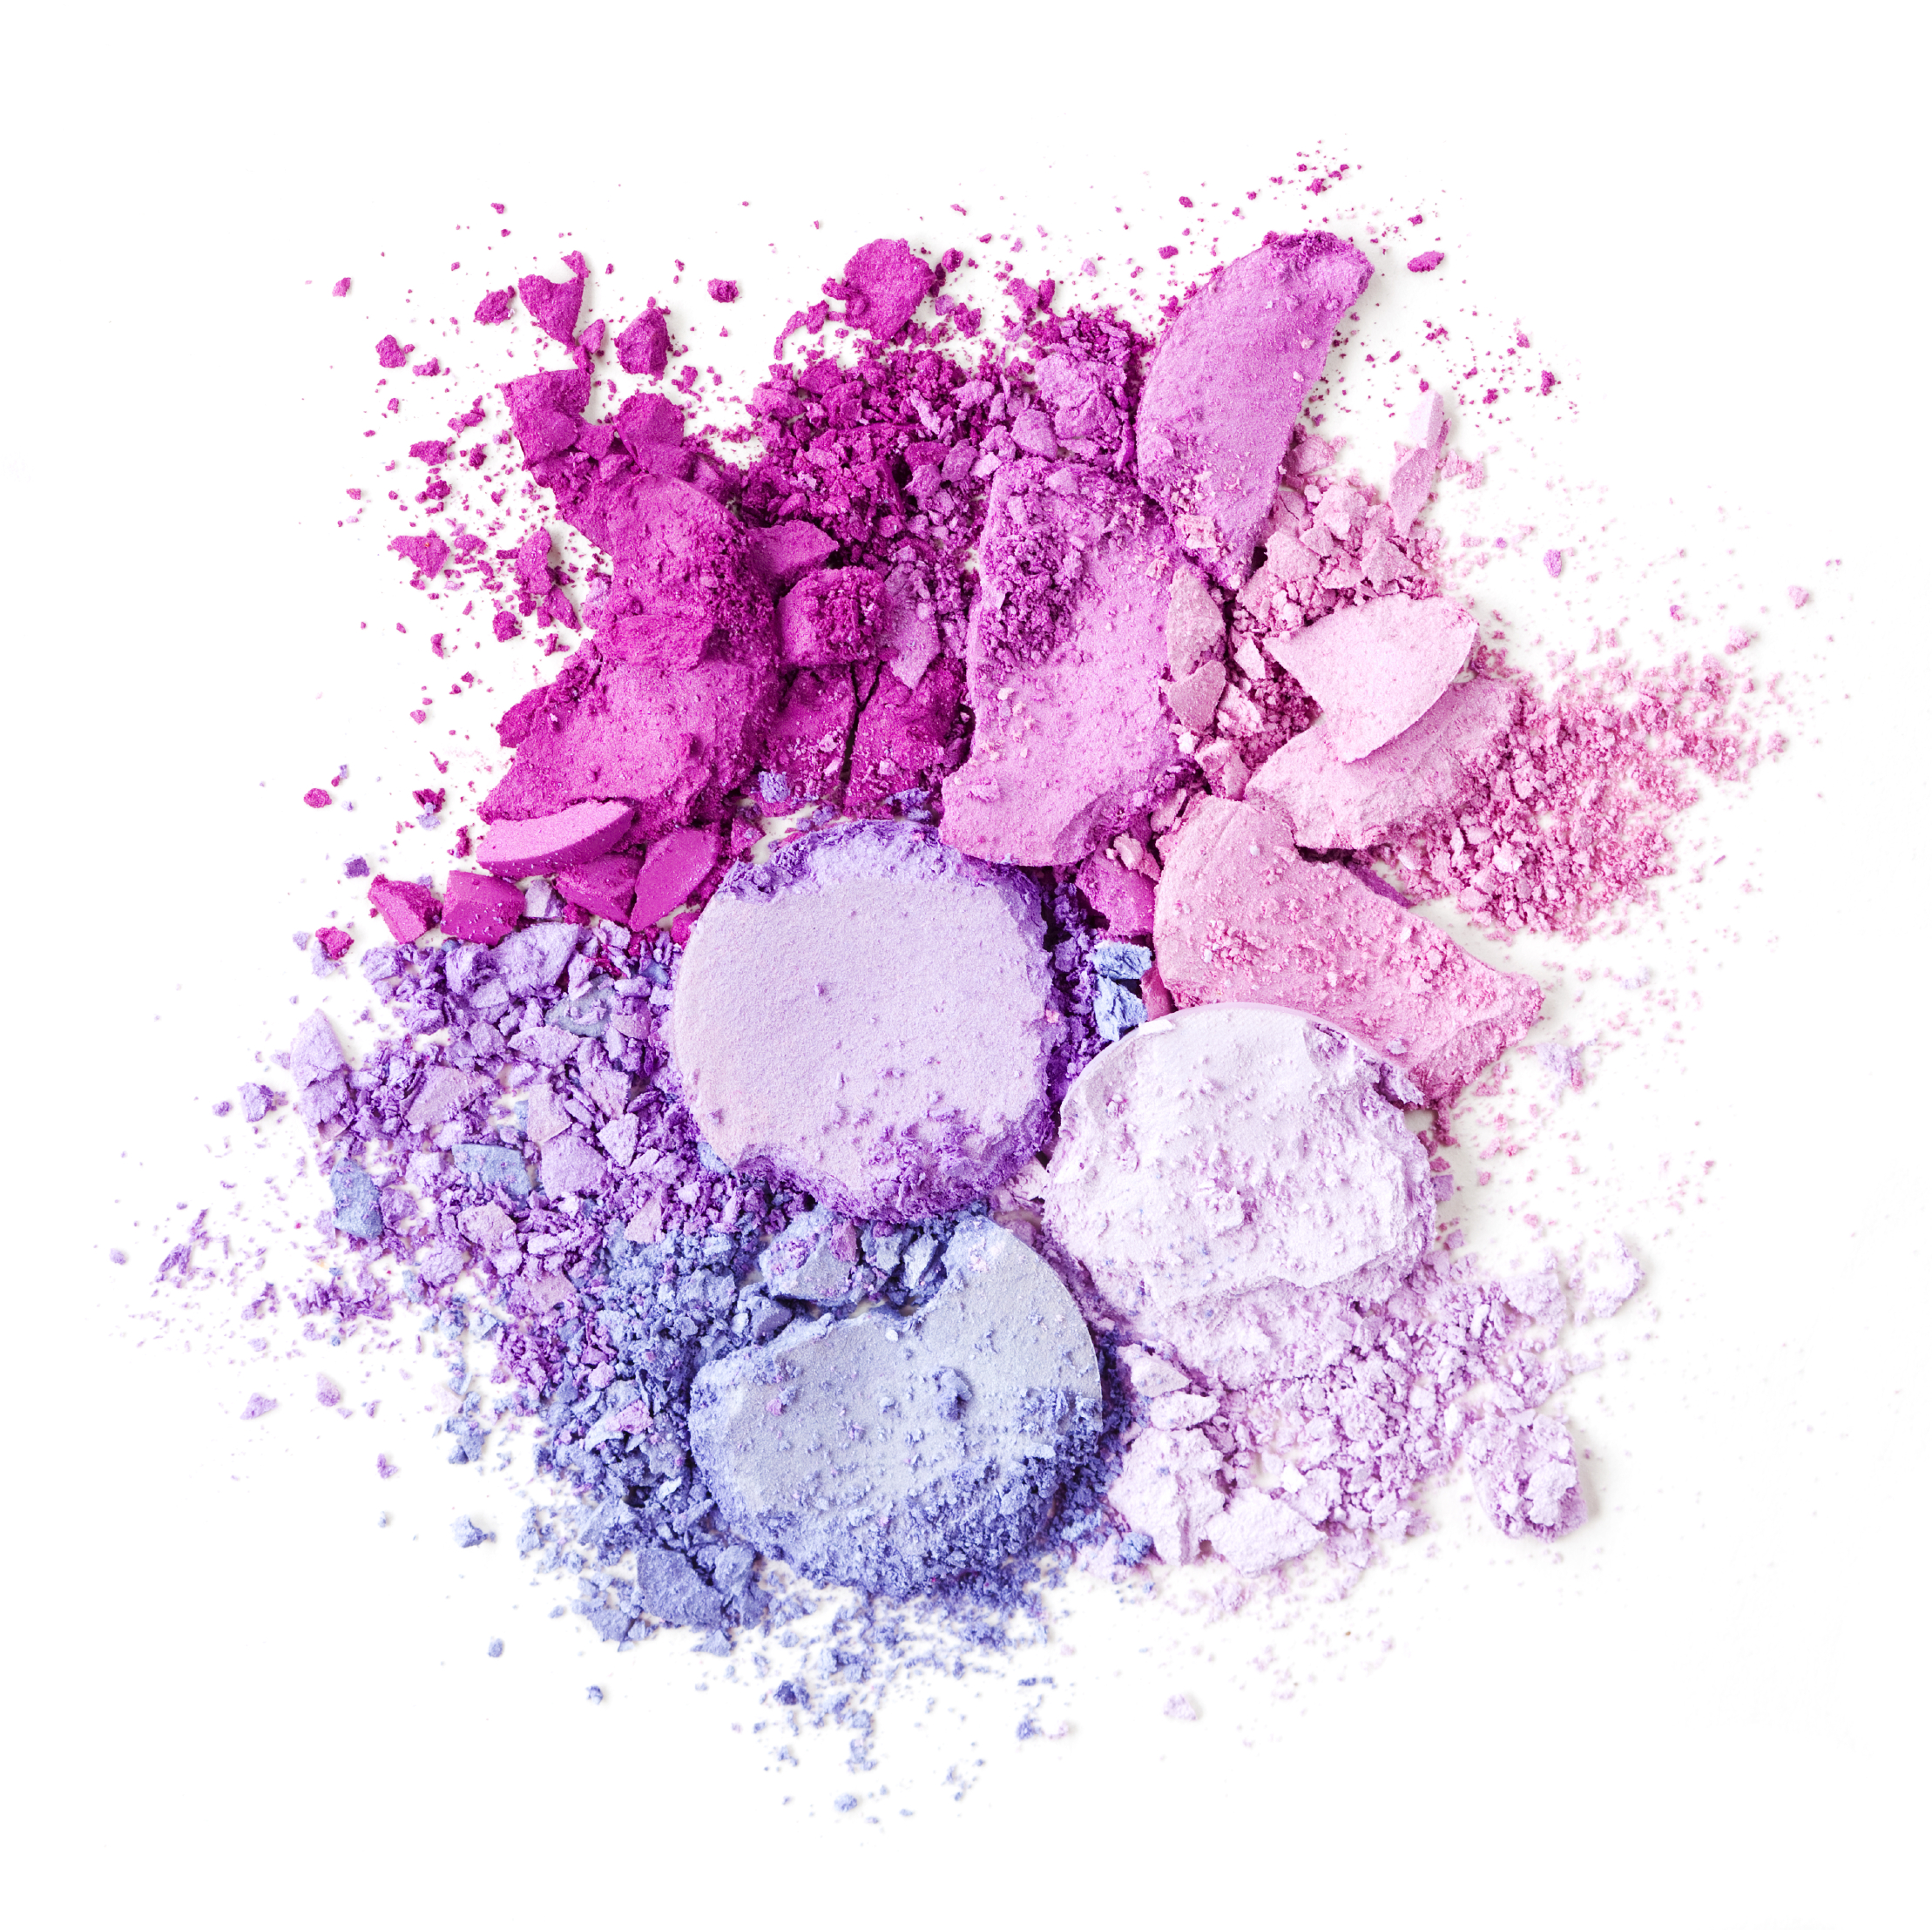 Crushed Brightly Colored Makeup Purple Pink